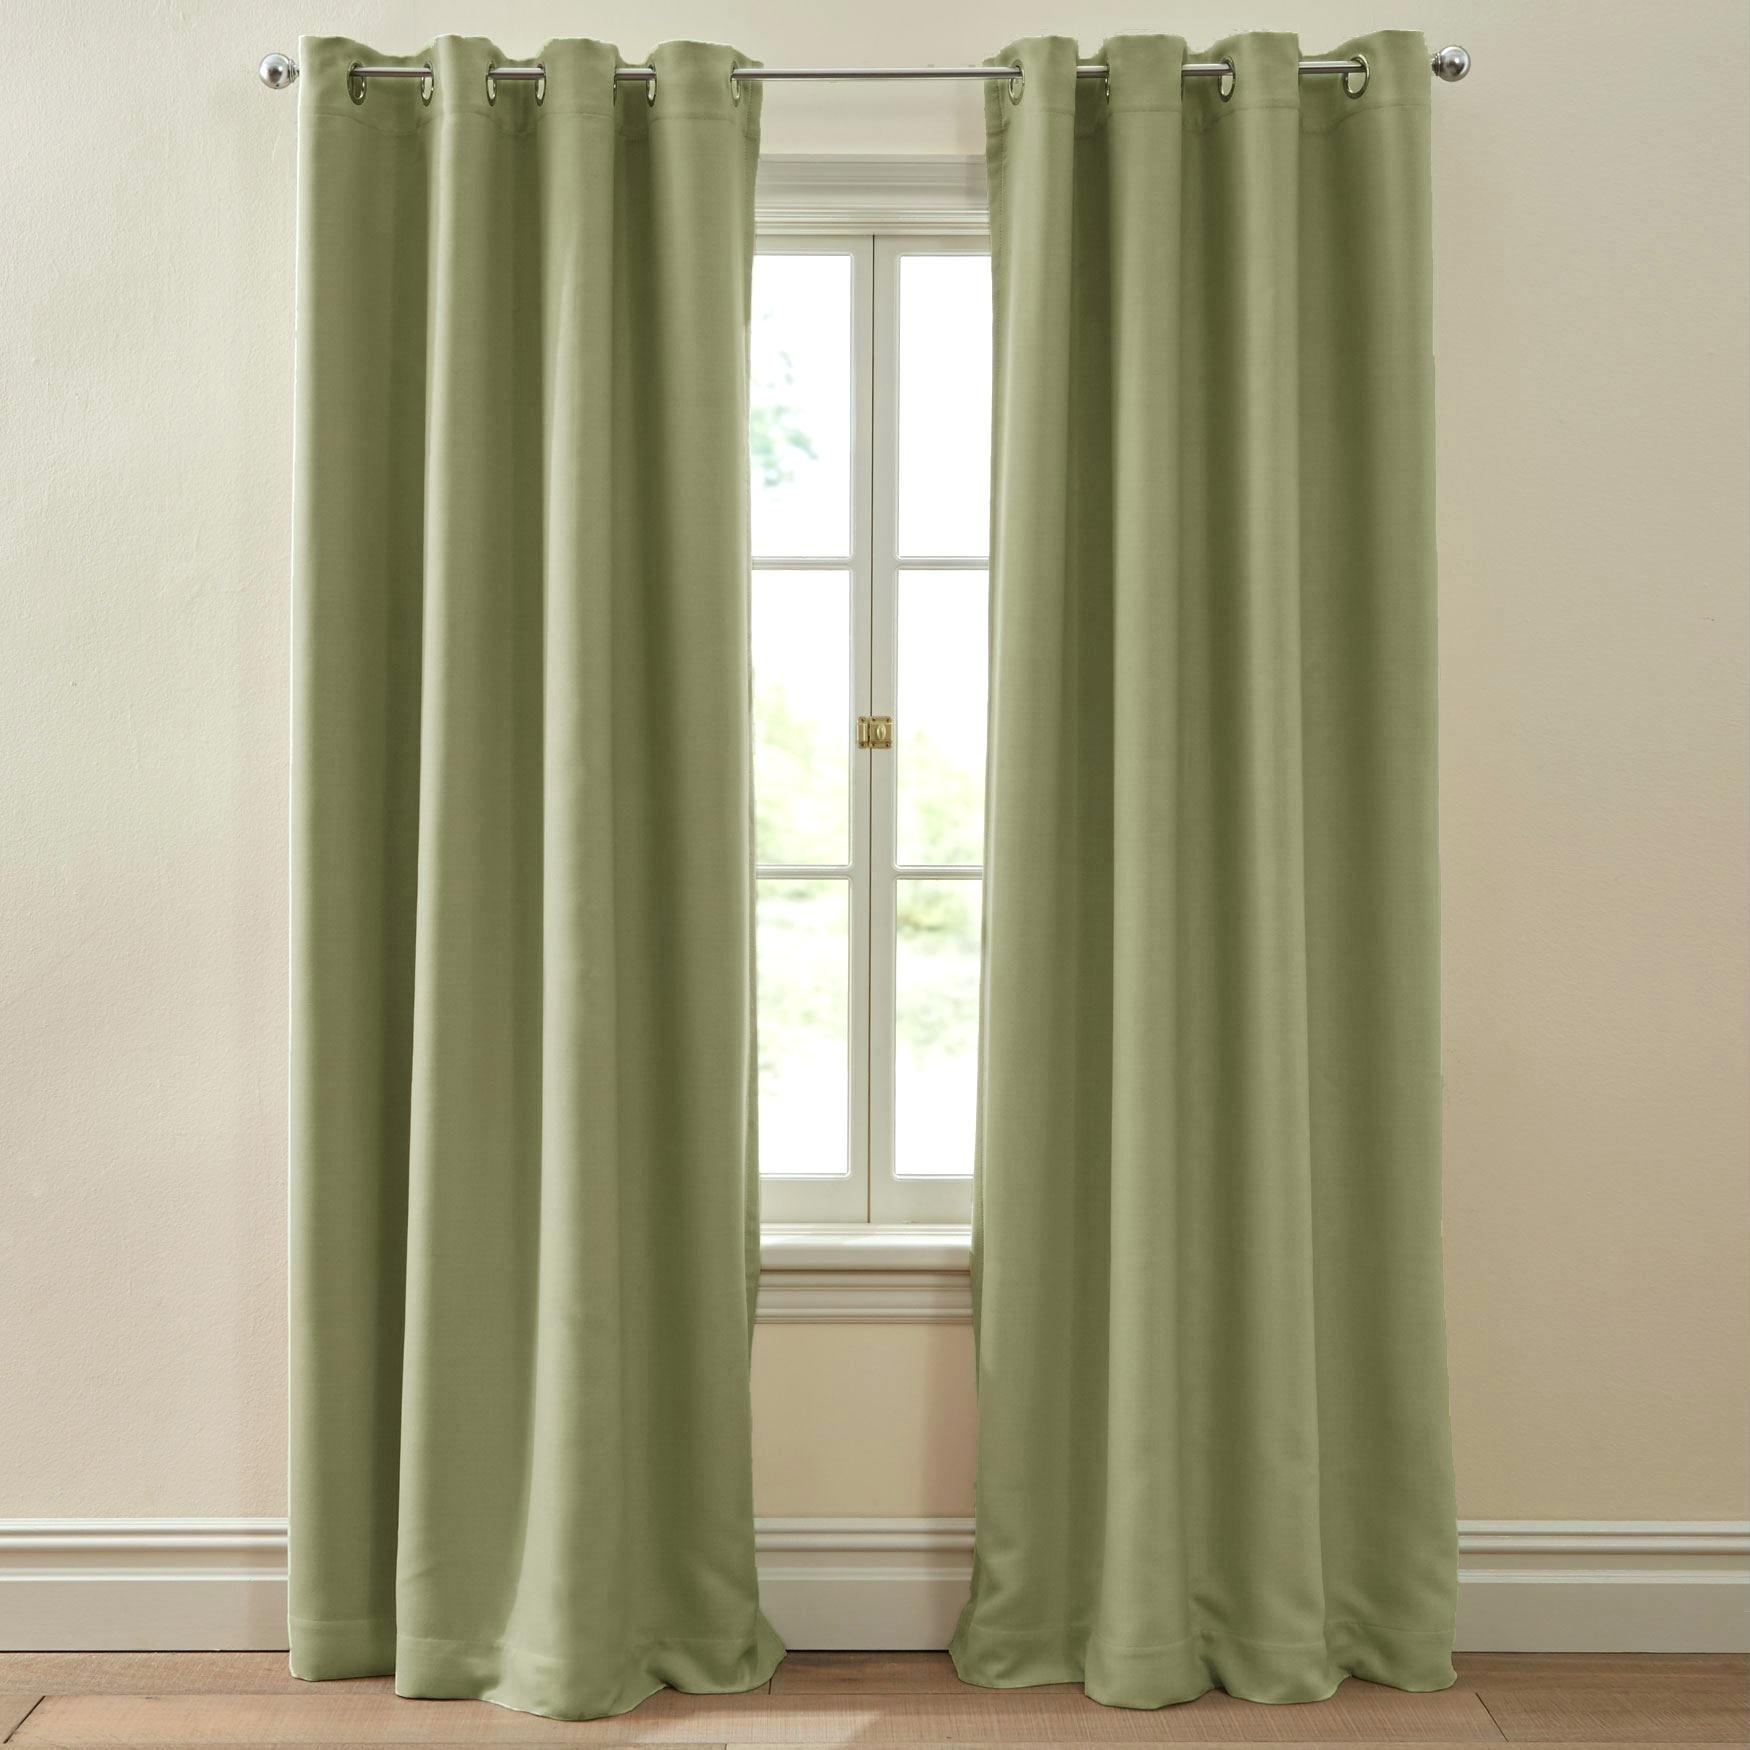 Gromet Panel Curtains – Bshteam (View 15 of 30)